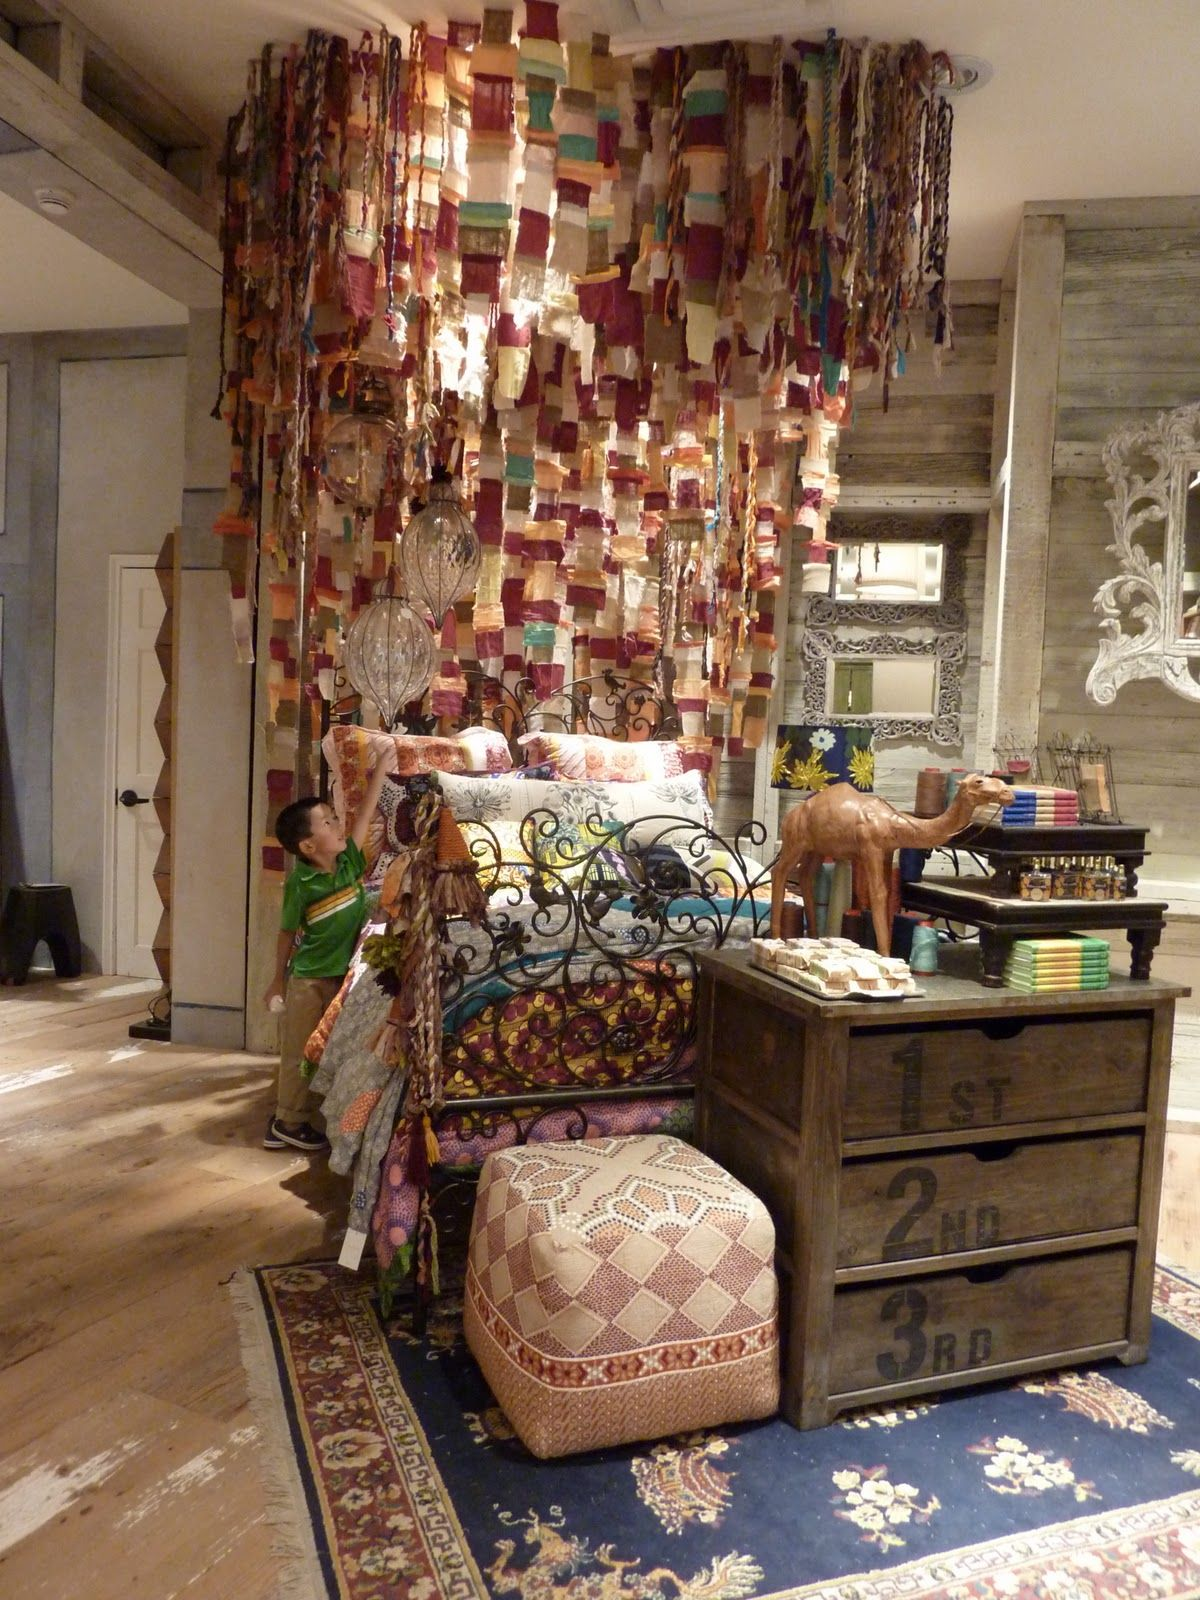 Bohemian Bettwäsche Fabric Scraps Anthropologie Display As Art Displays